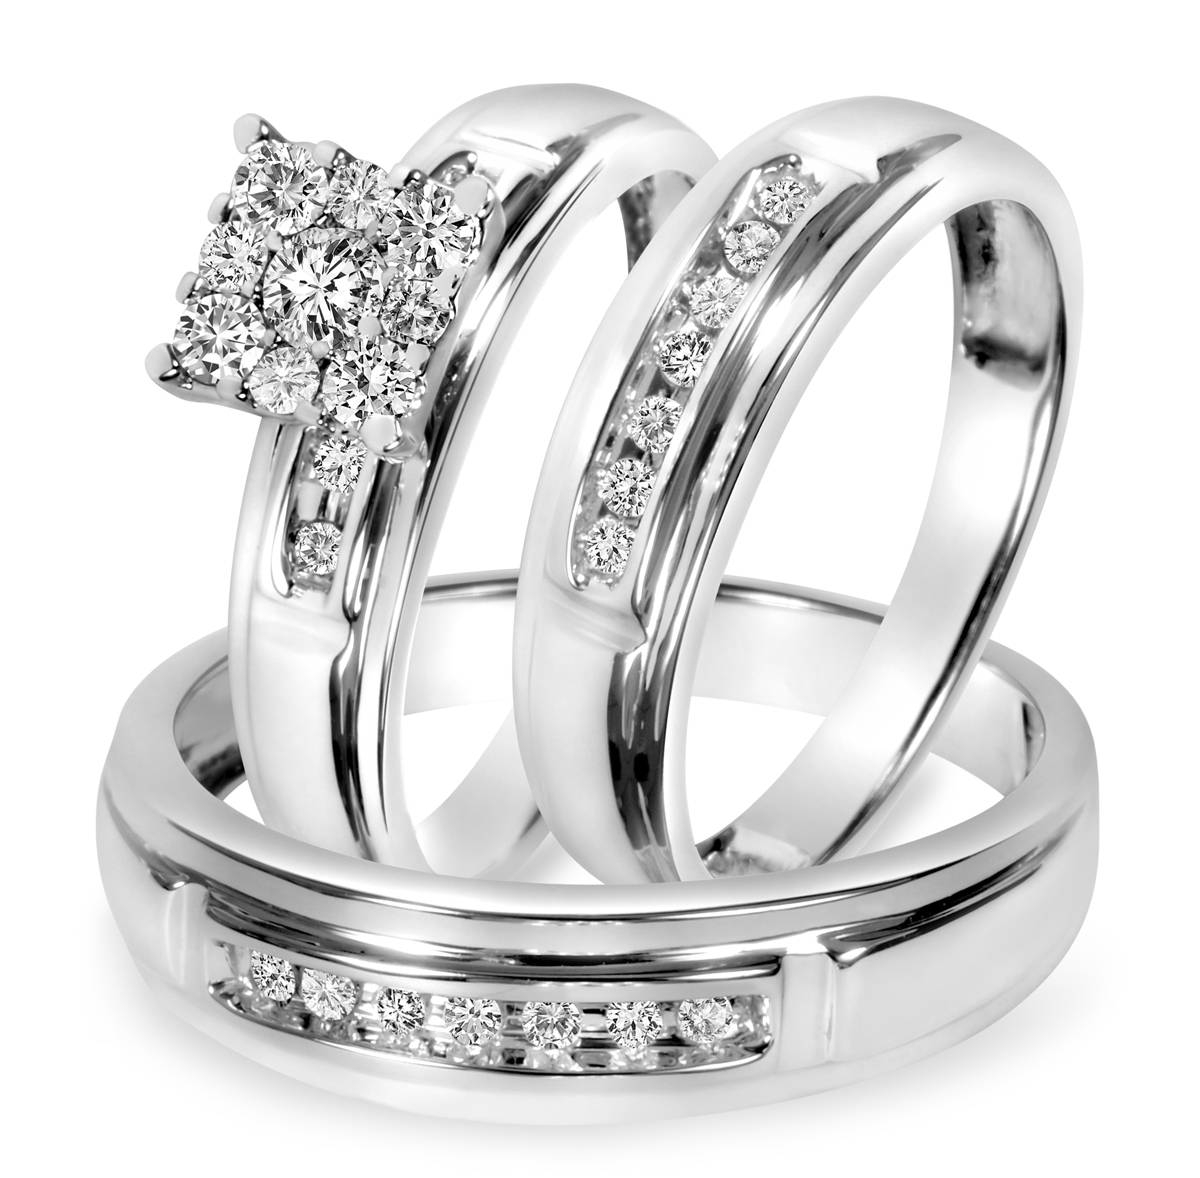 Engagement Rings : Wedding Ring Sets His And Hers Amazing Intended For Engagement Rings And Wedding Rings Sets (View 14 of 15)